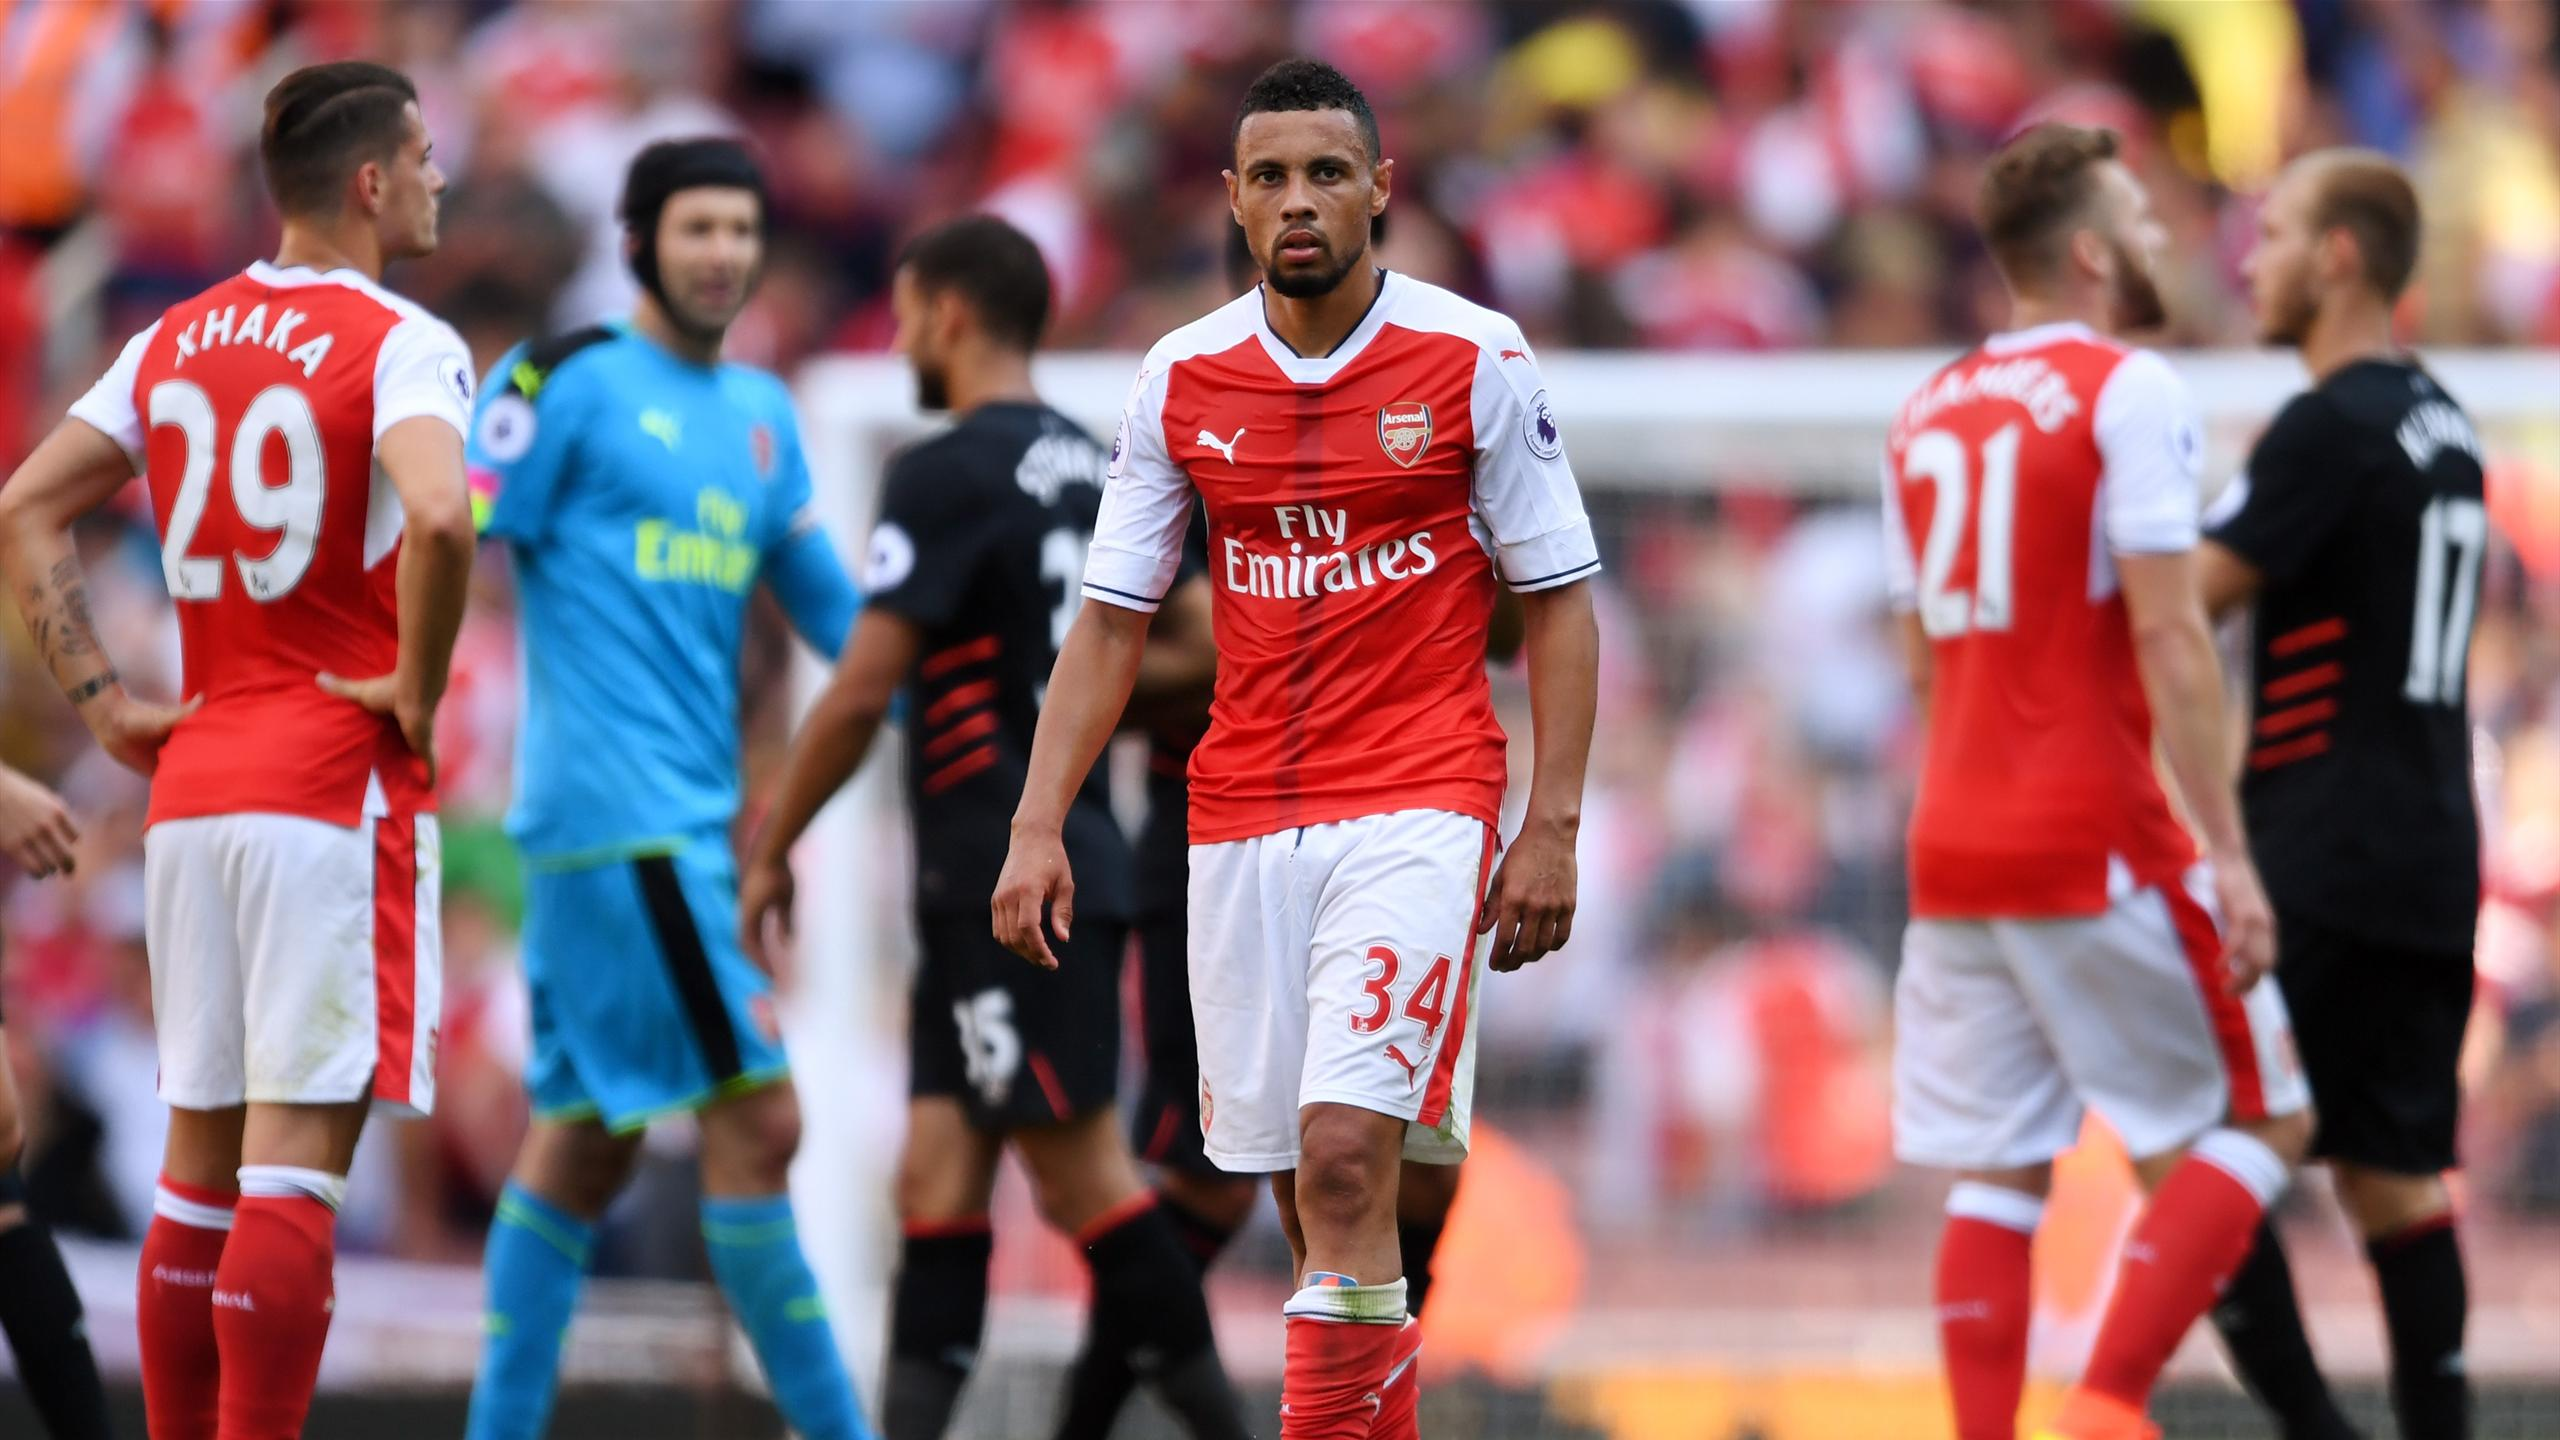 Arsenal's Francis Coquelin dejected after the match